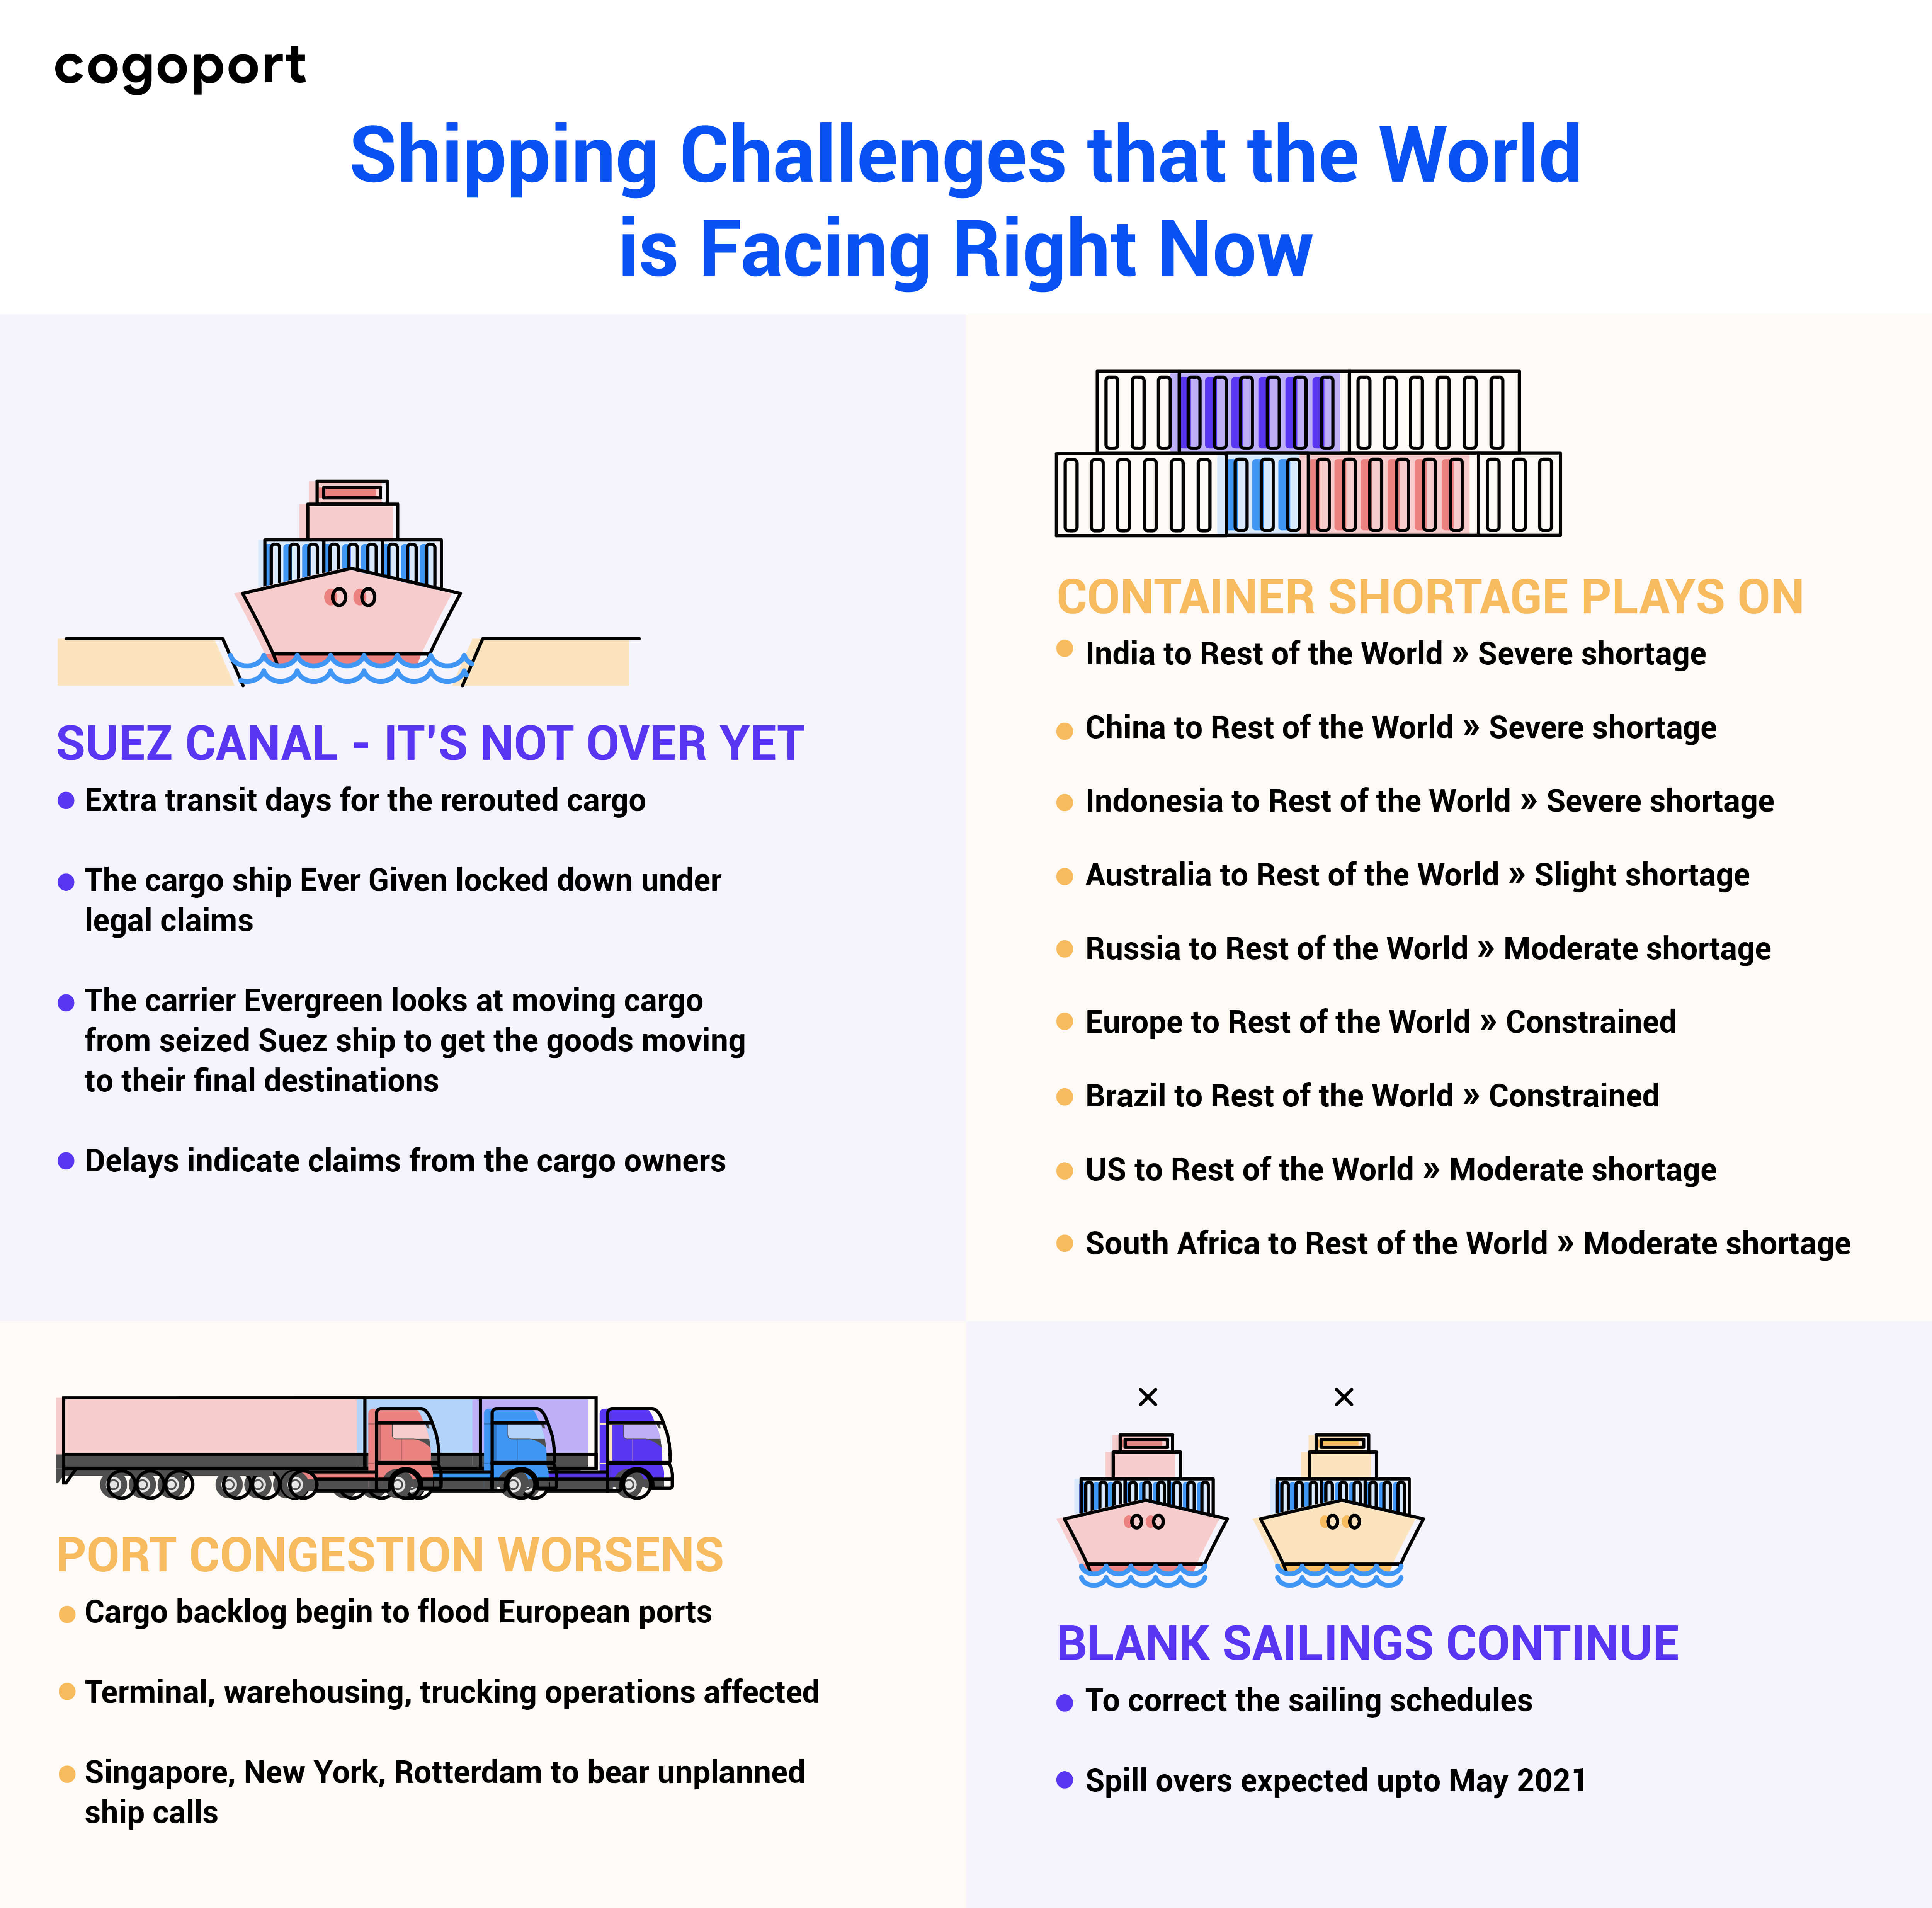 Shipping challenges that the World is facing right now